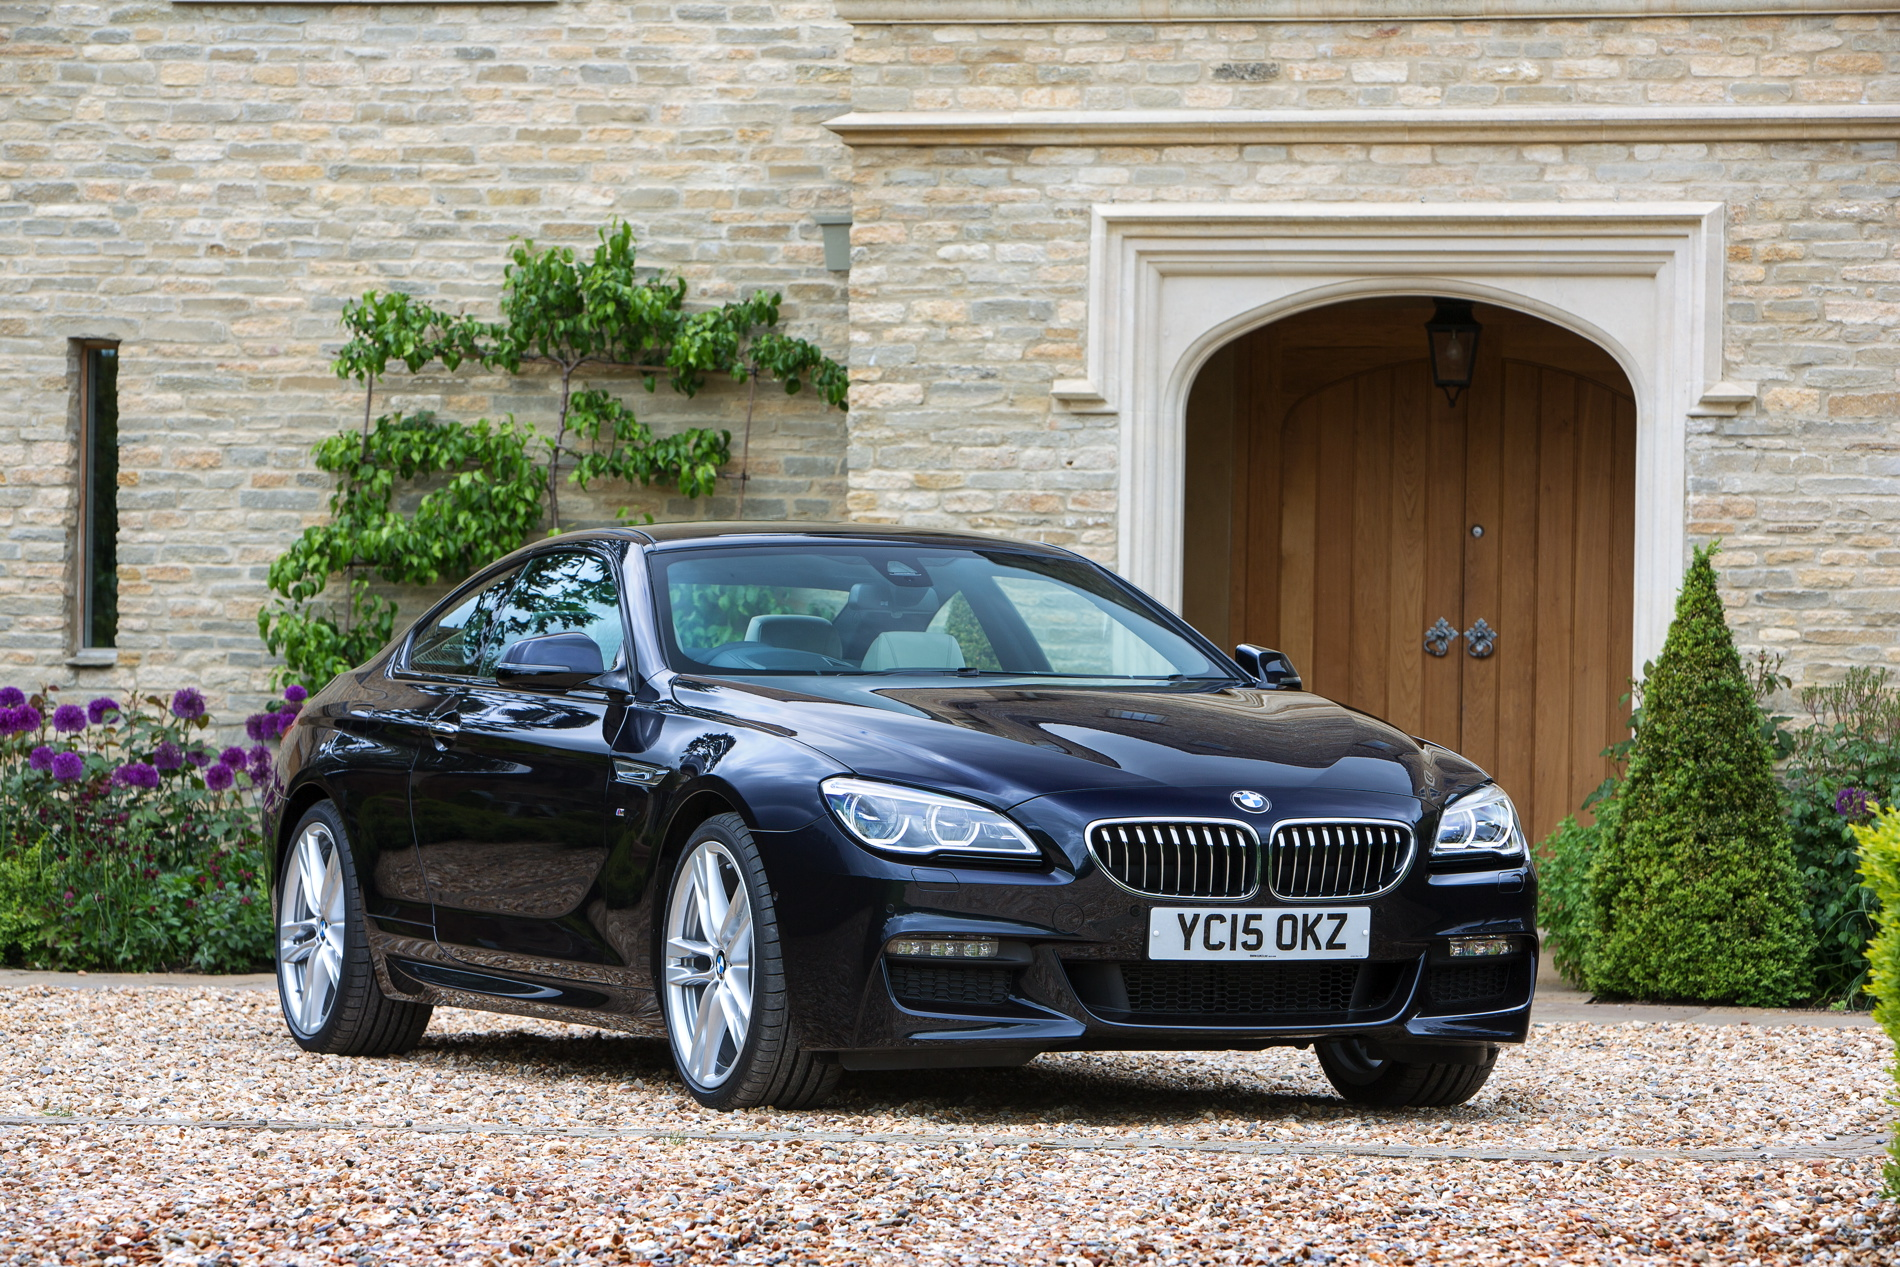 BMW 6 Series Coupe Goes Out of Production in Dingolfing Plant